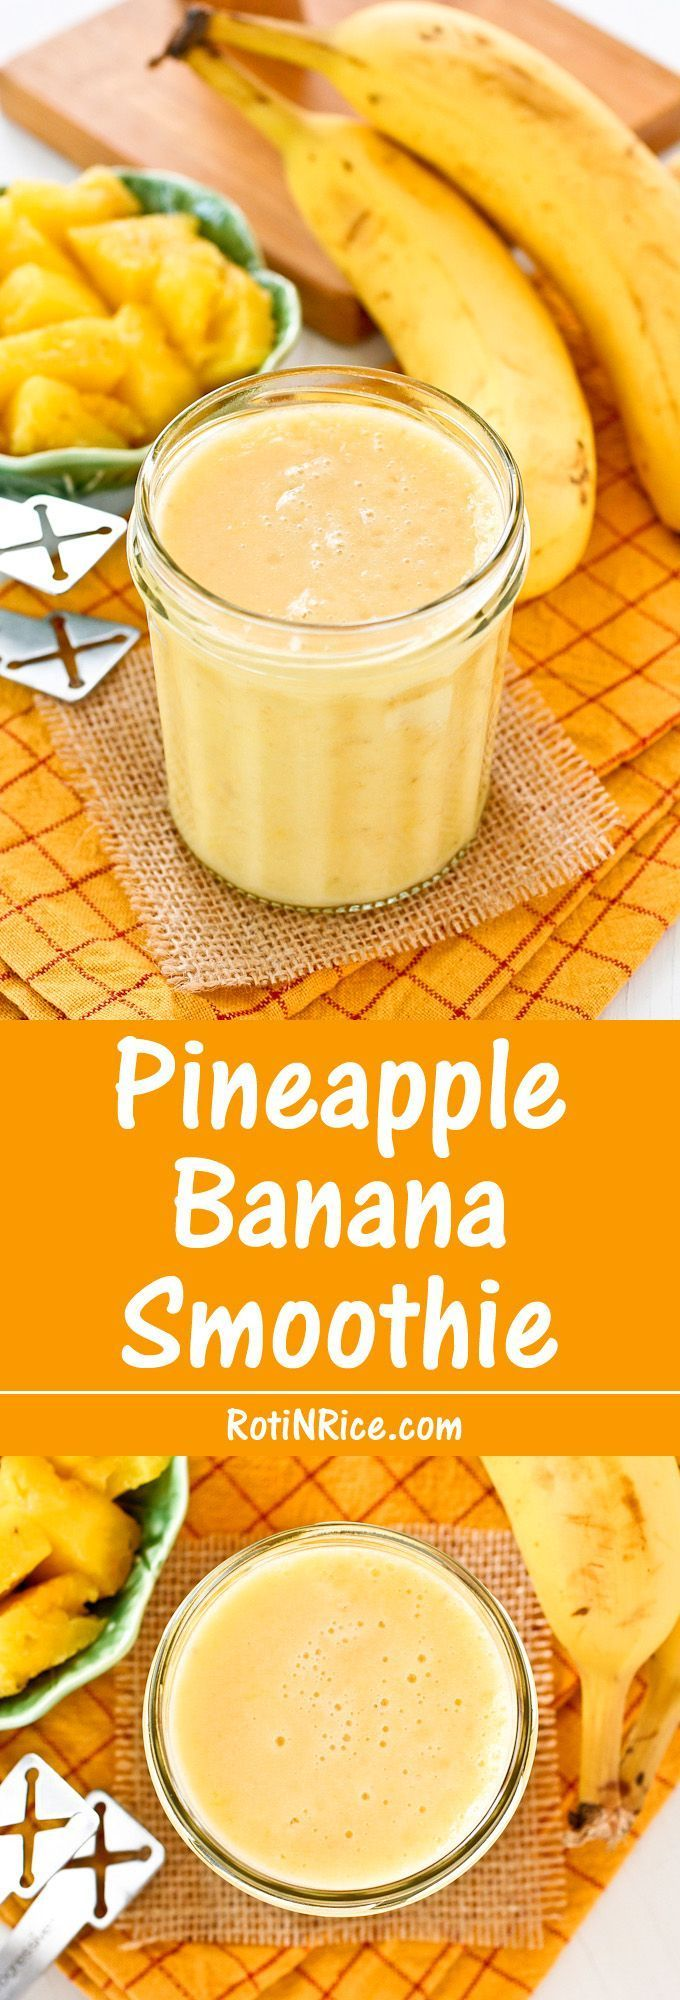 Start your day with this delicious Pineapple Banana Smoothie. It's a glass of tropical sunshine with a slight and refreshing tanginess. | Food to gladden the heart at http://RotiNRice.com